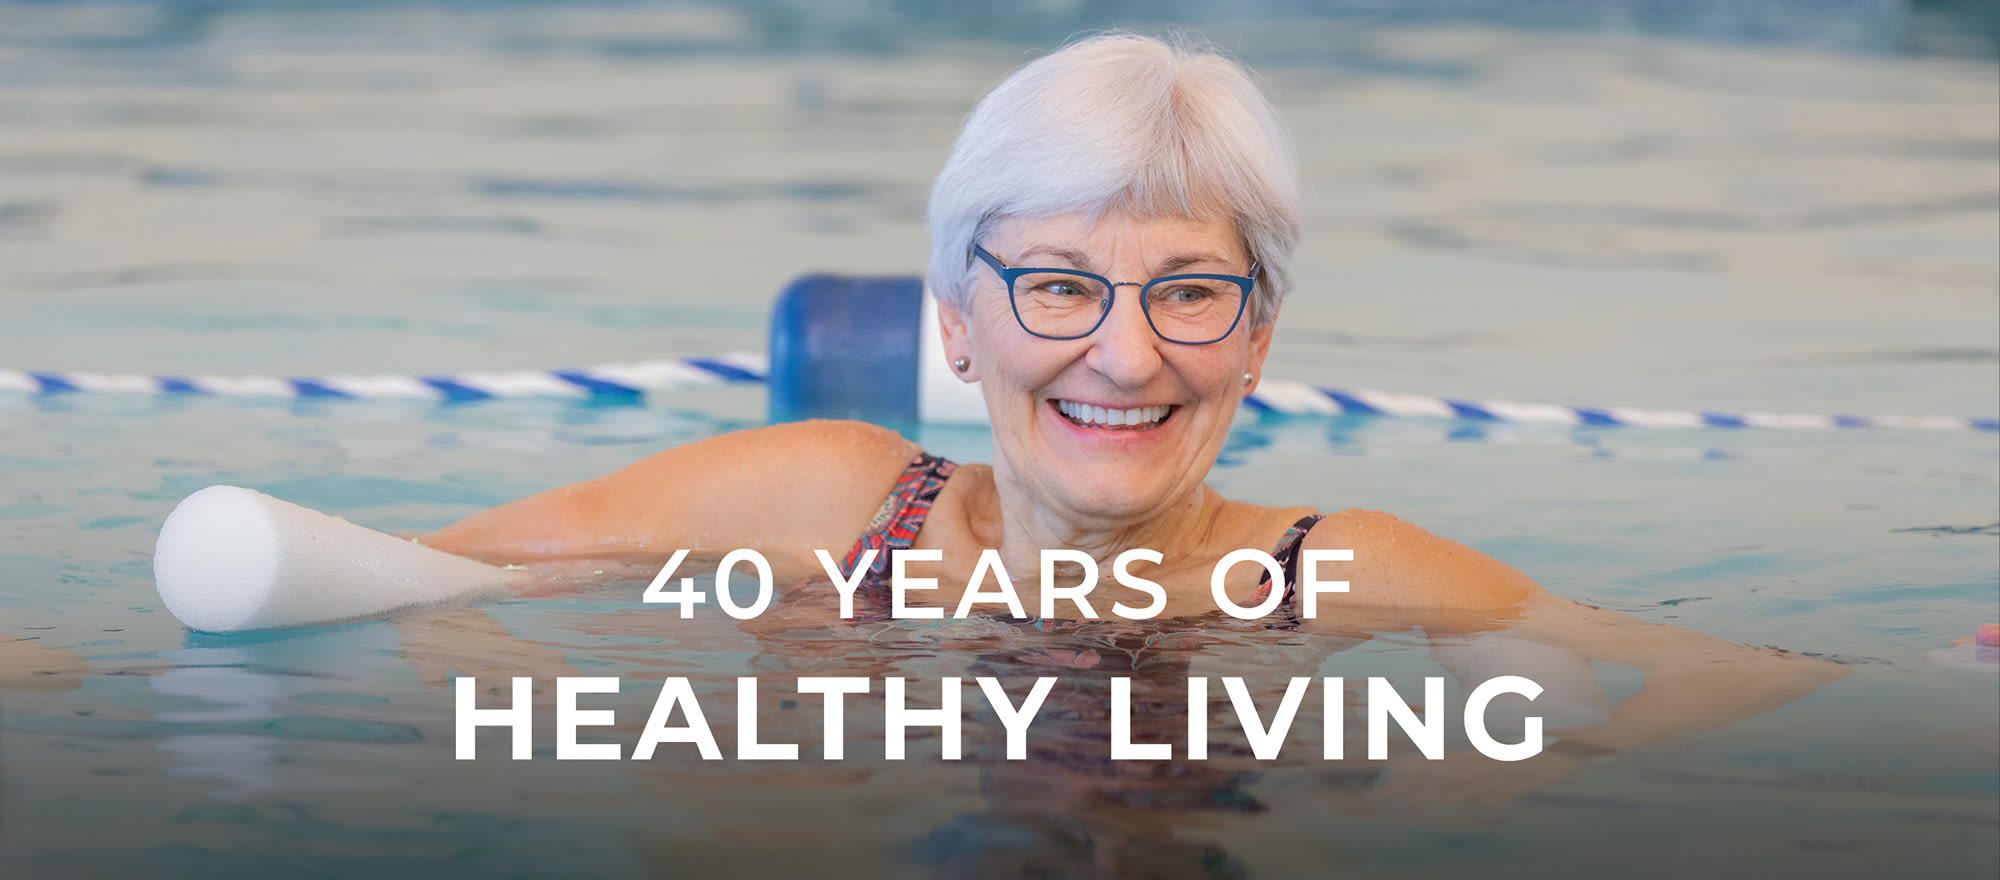 40 Years of Healthy Living